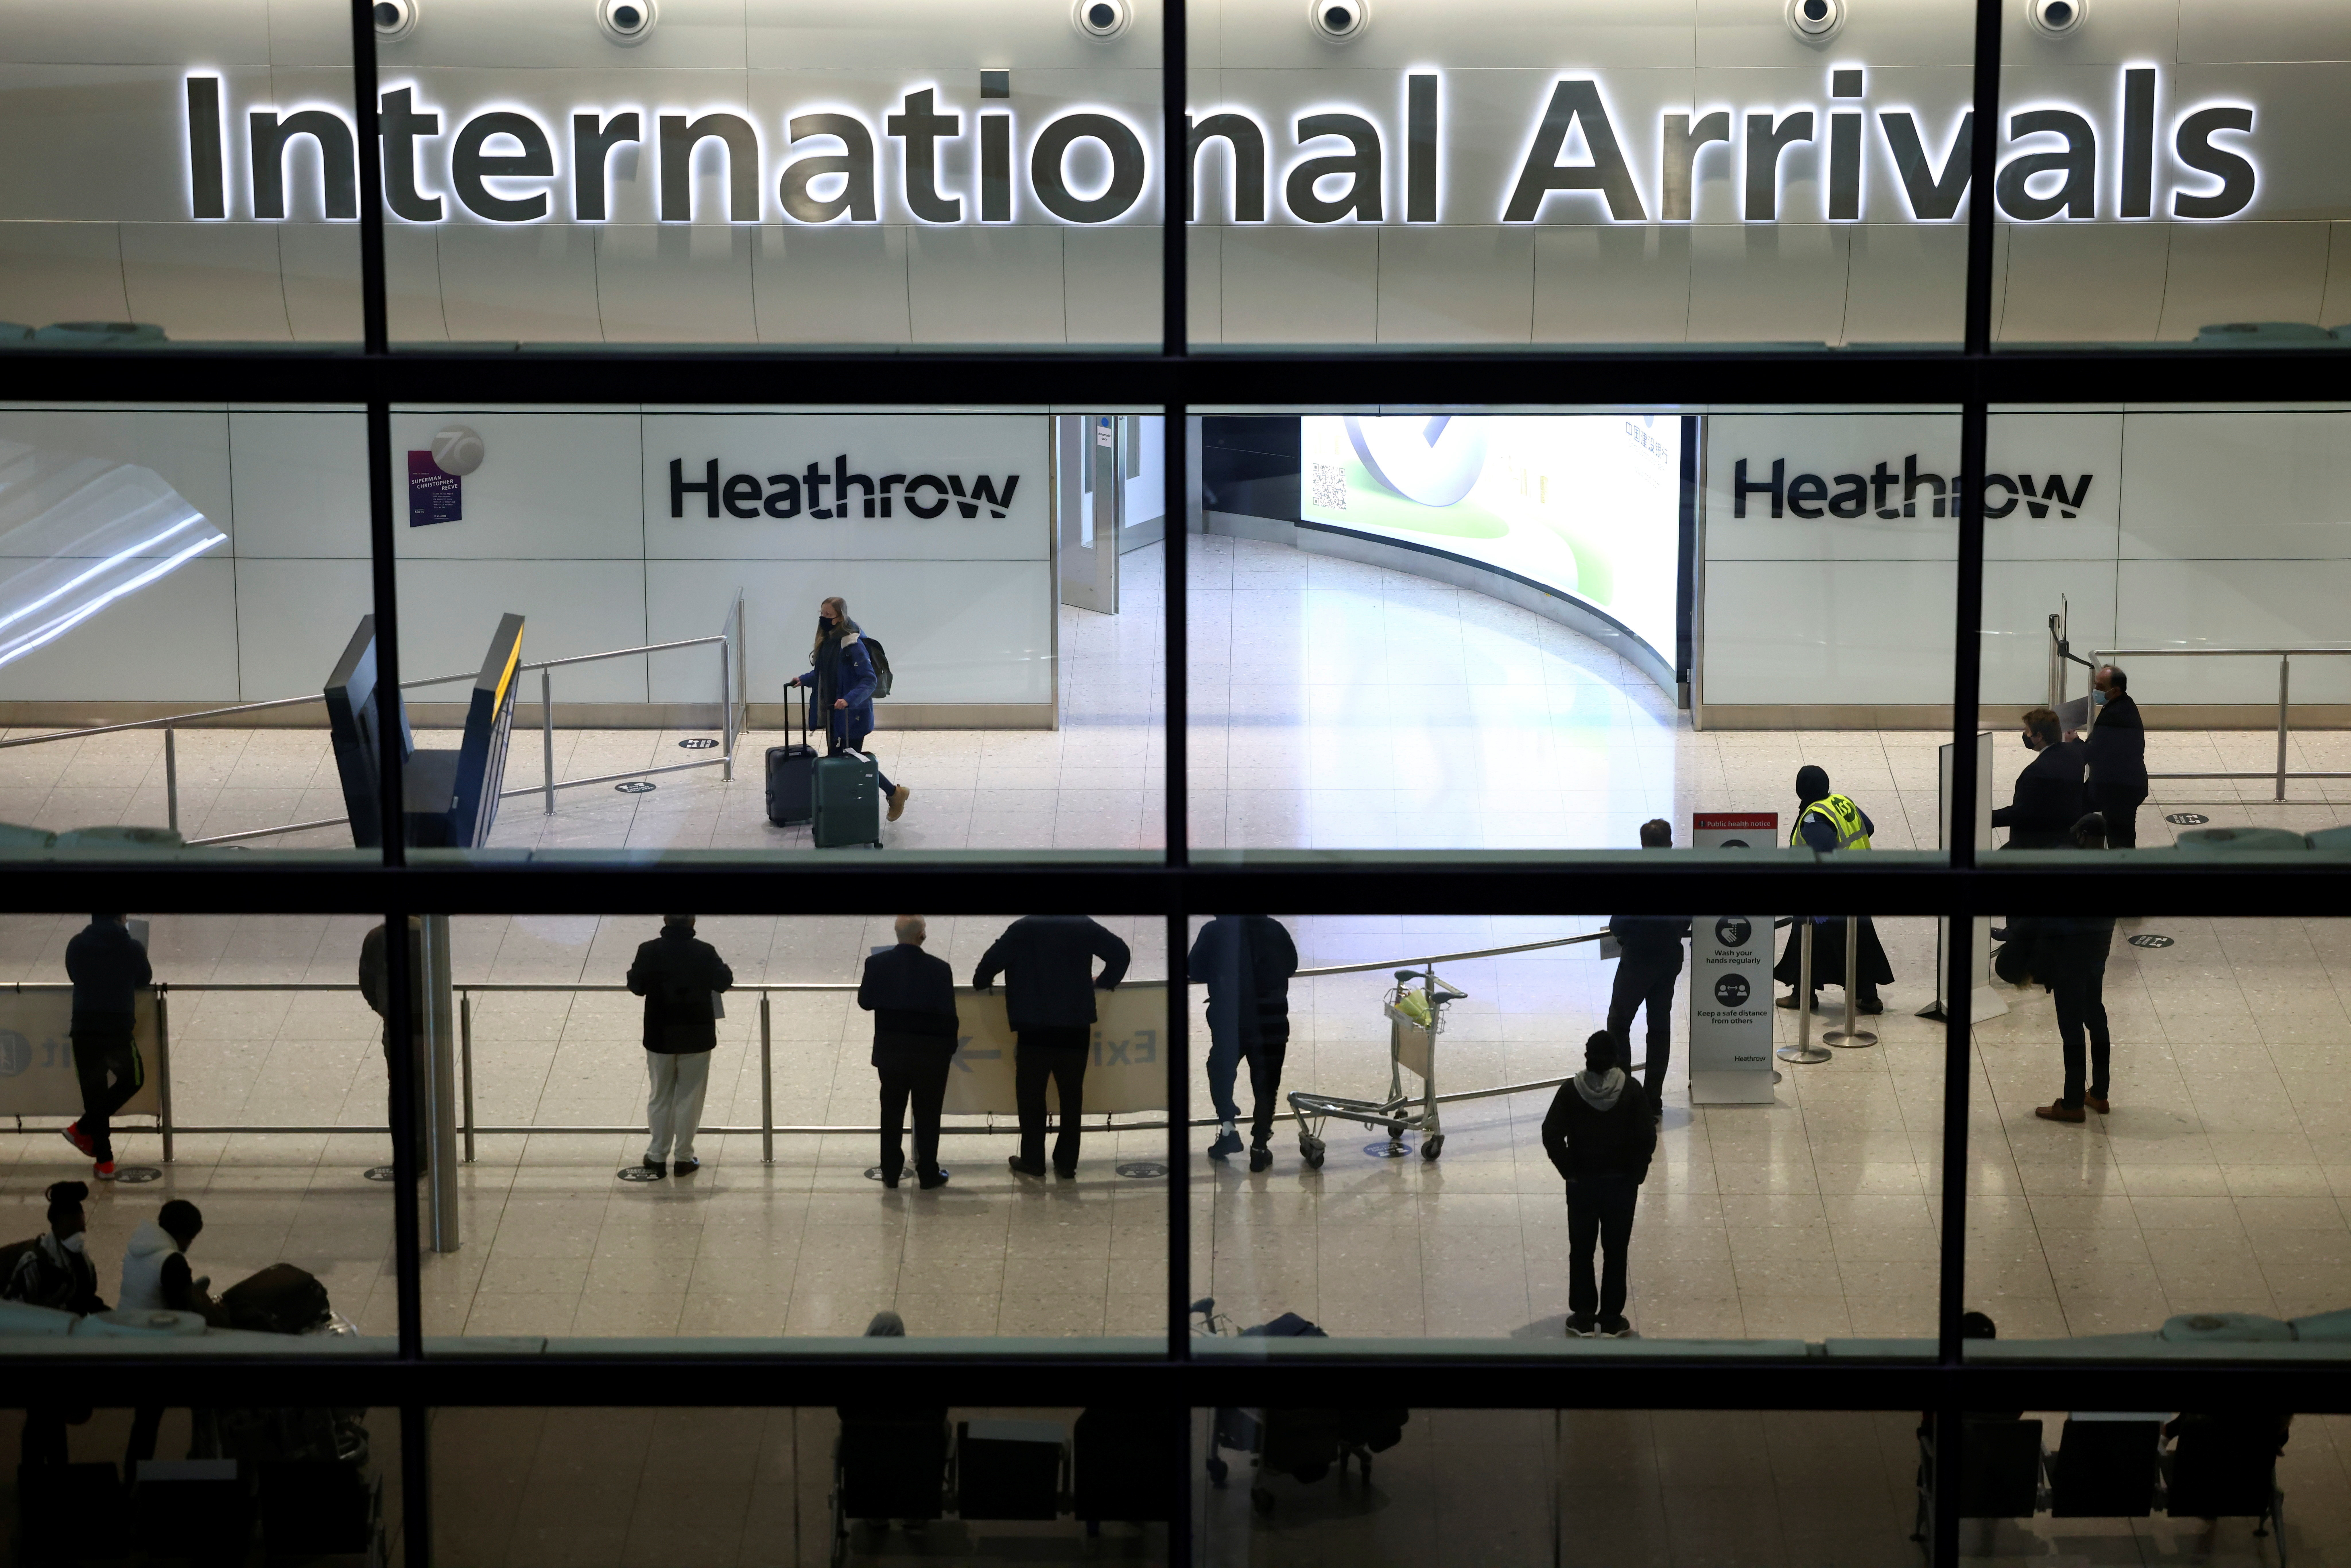 People wait at the arrivals area, as tighter rules for international travellers start, at terminal 2 of the Heathrow Airport, amid the spread of the coronavirus disease (COVID-19) pandemic, London, Britain, January 18, 2021. REUTERS/Henry Nicholls - RC2AAL97O1CF